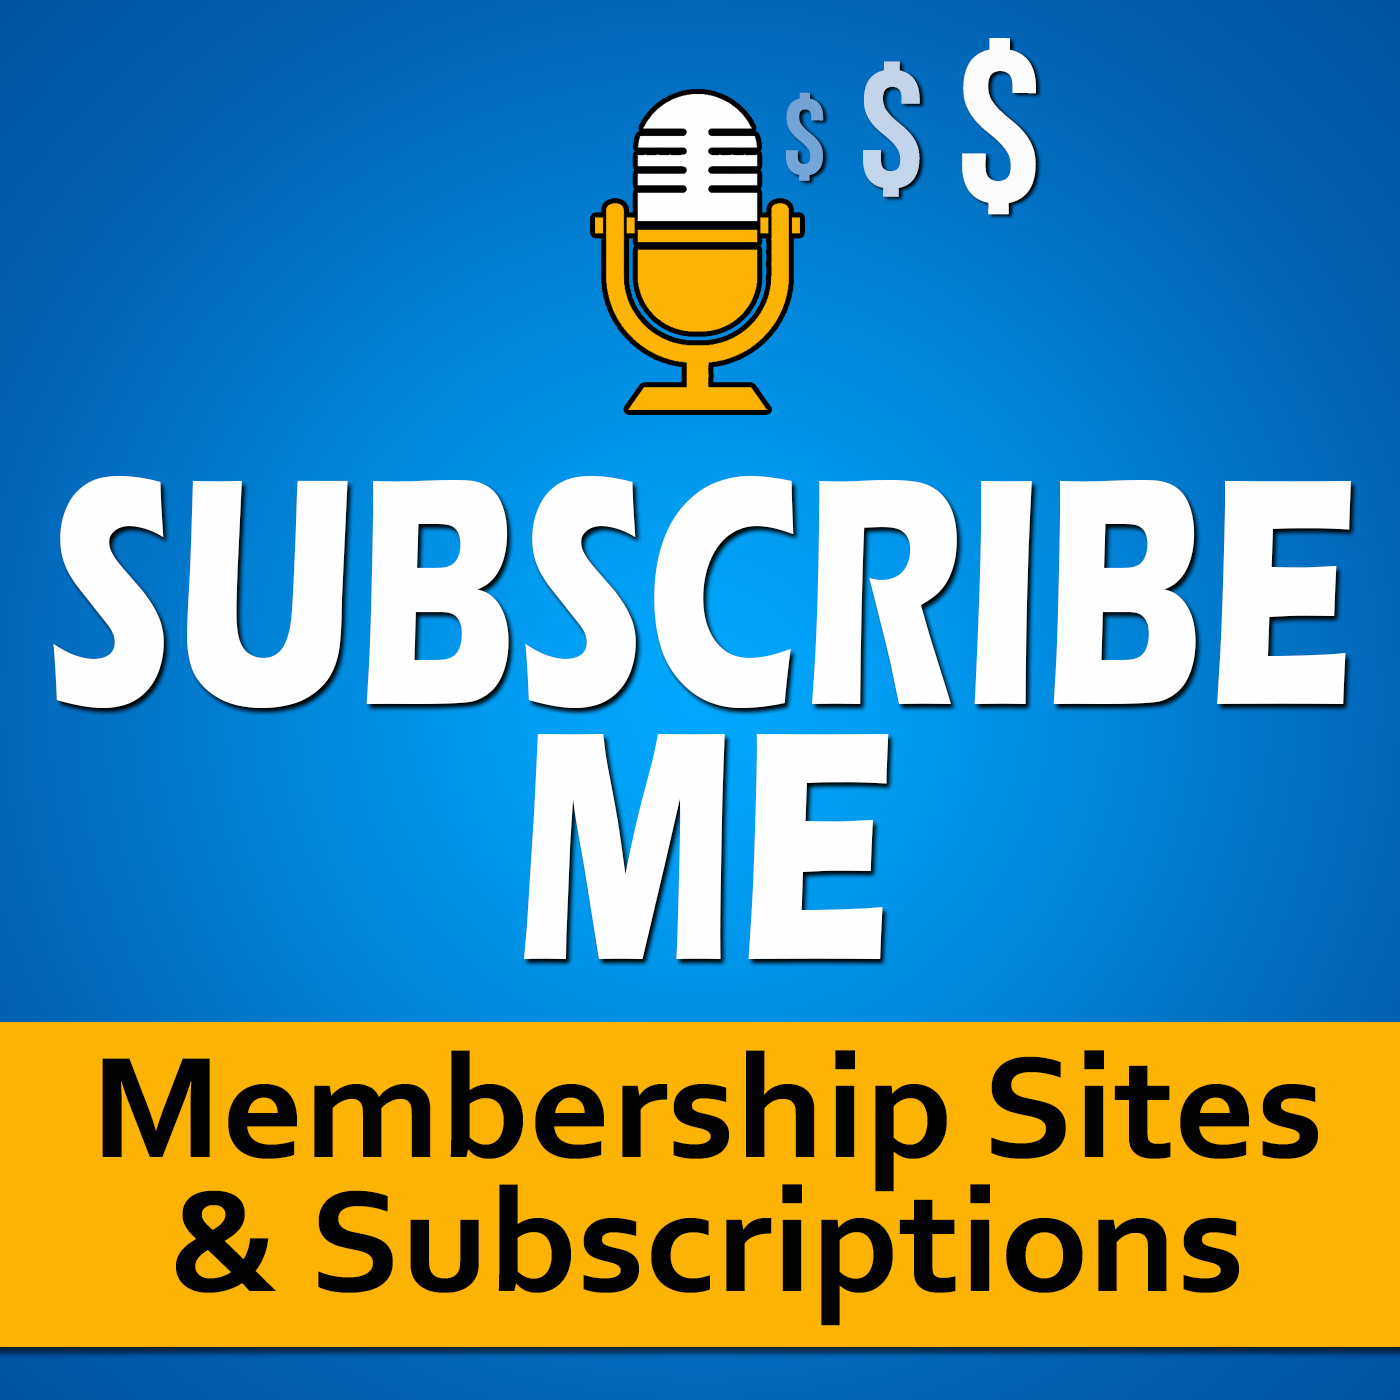 SubscribeMe Online Courses, Membership Sites, Content Marketing and Digital Marketing